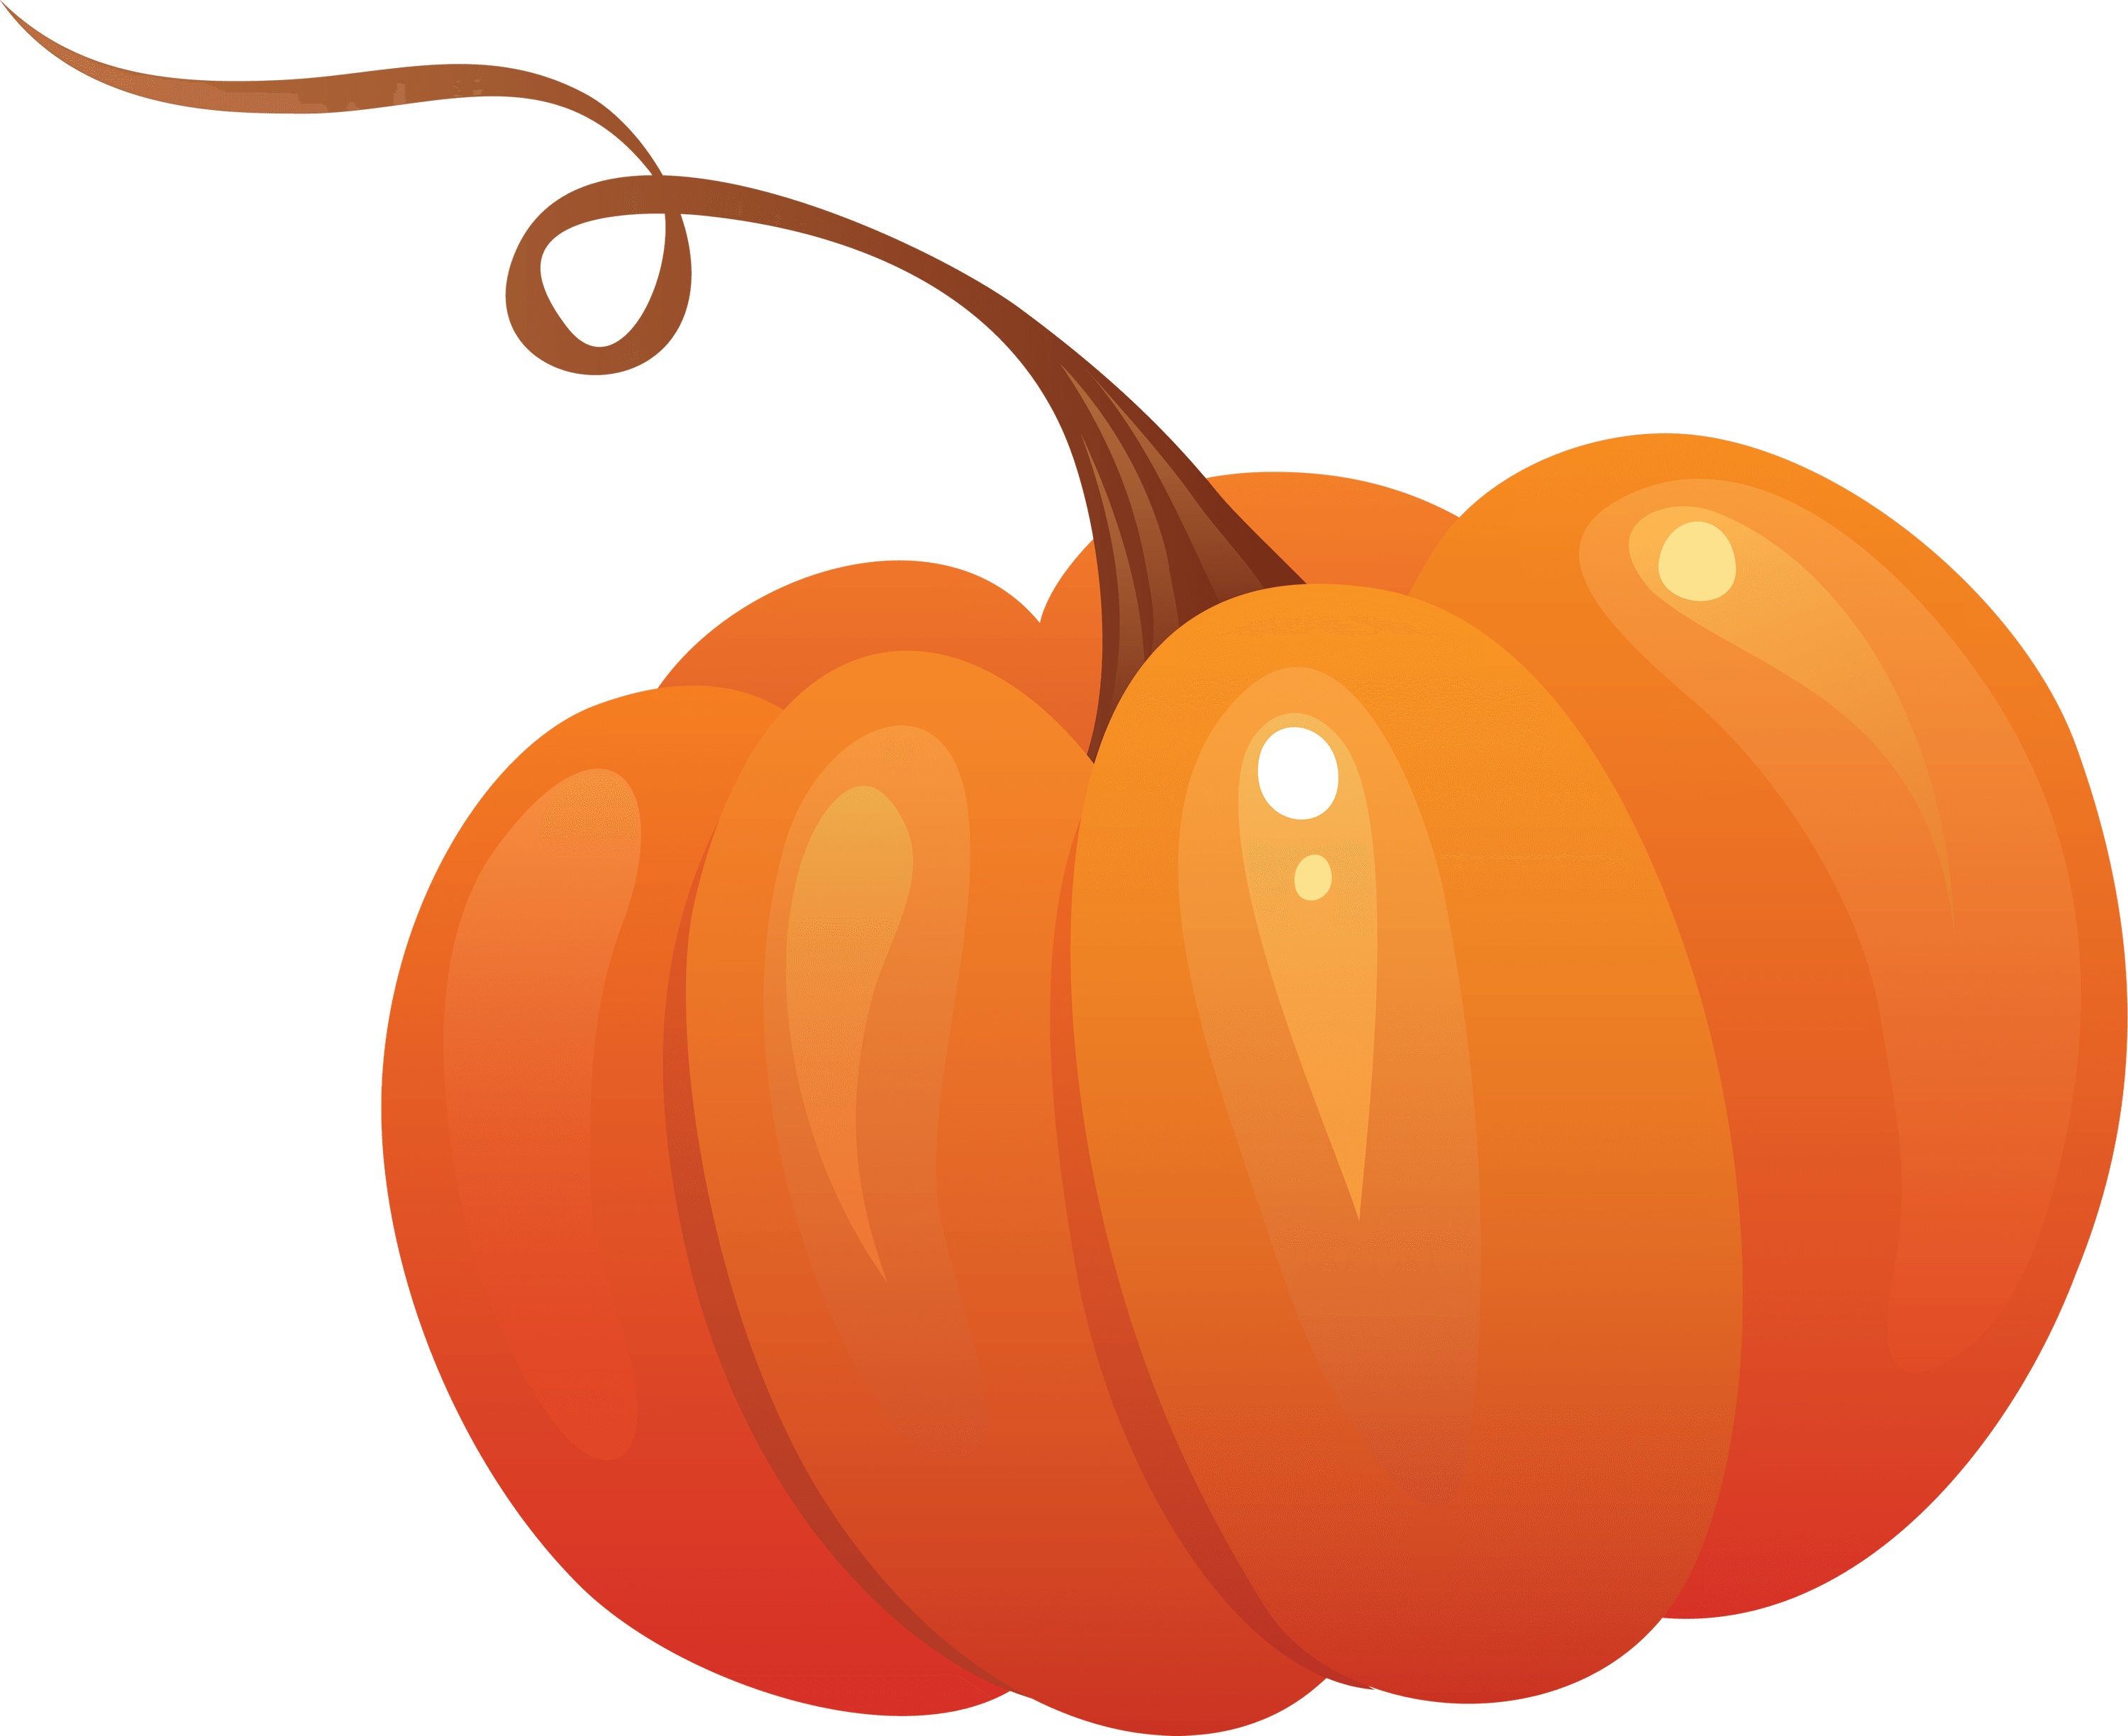 Free family pumpkin clipart graphic royalty free library Solo Pumpkin transparent PNG - StickPNG graphic royalty free library